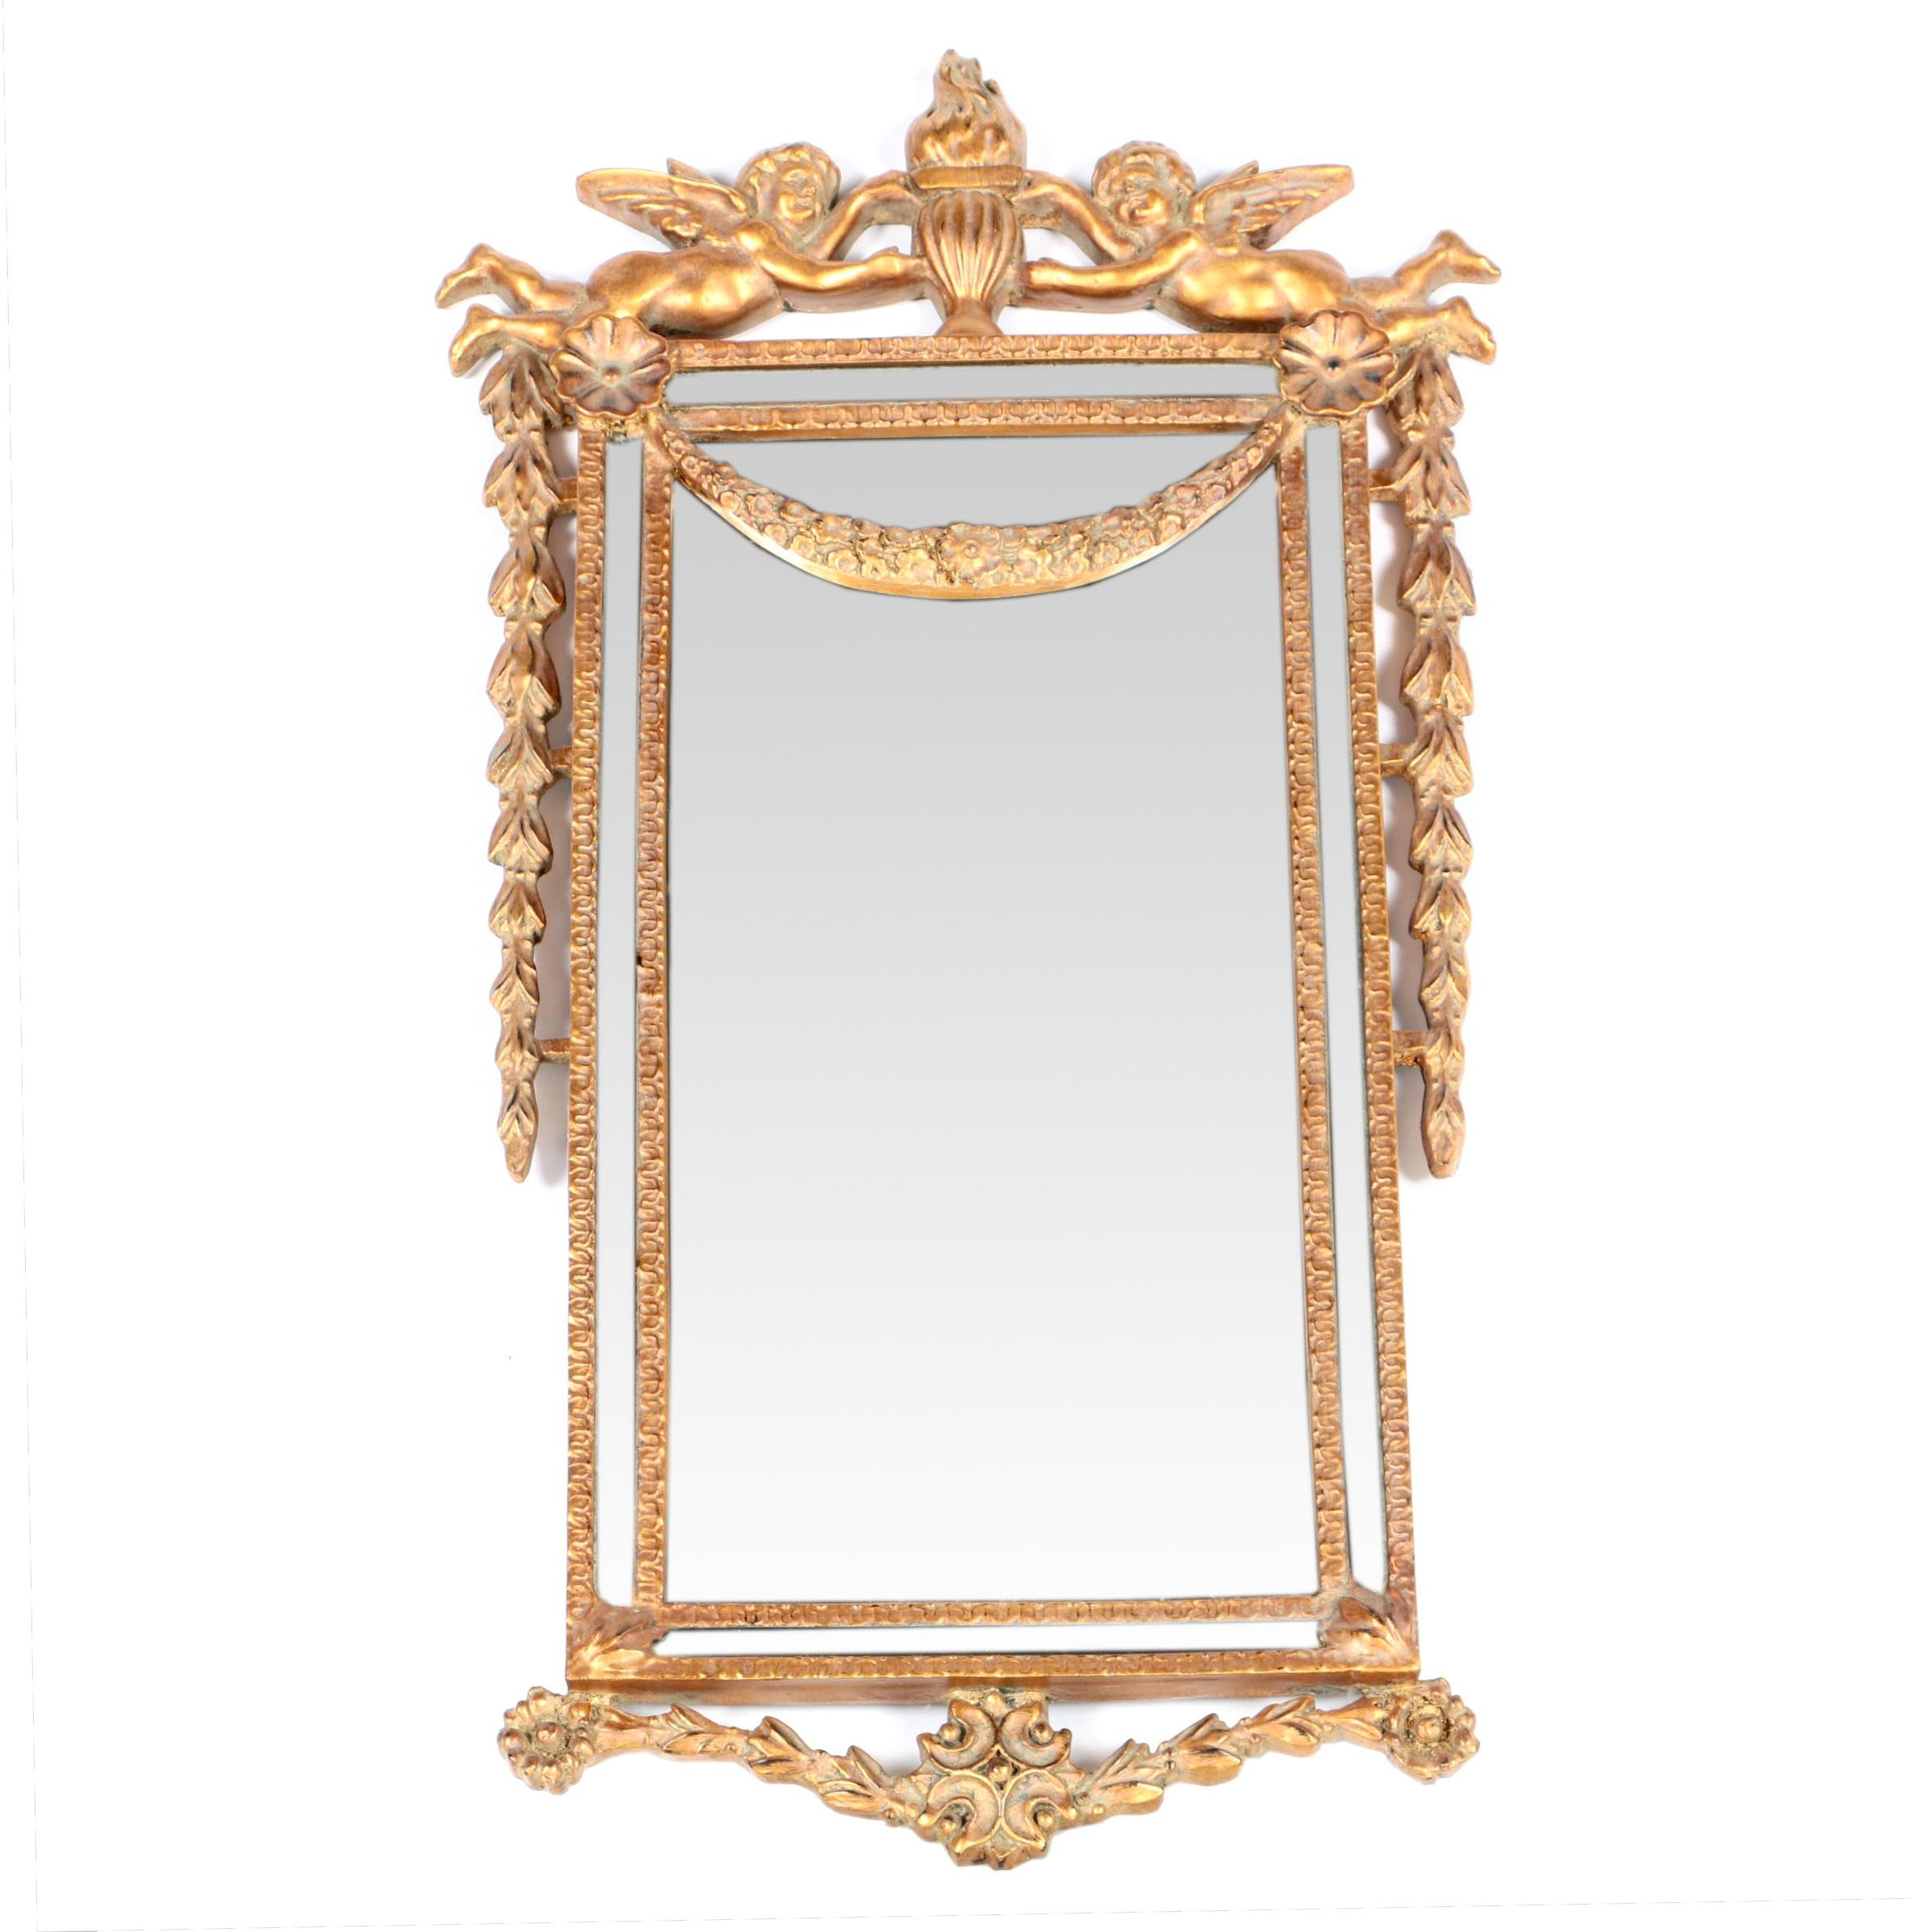 Baroque Style Wall Mirror with Cherub Accents